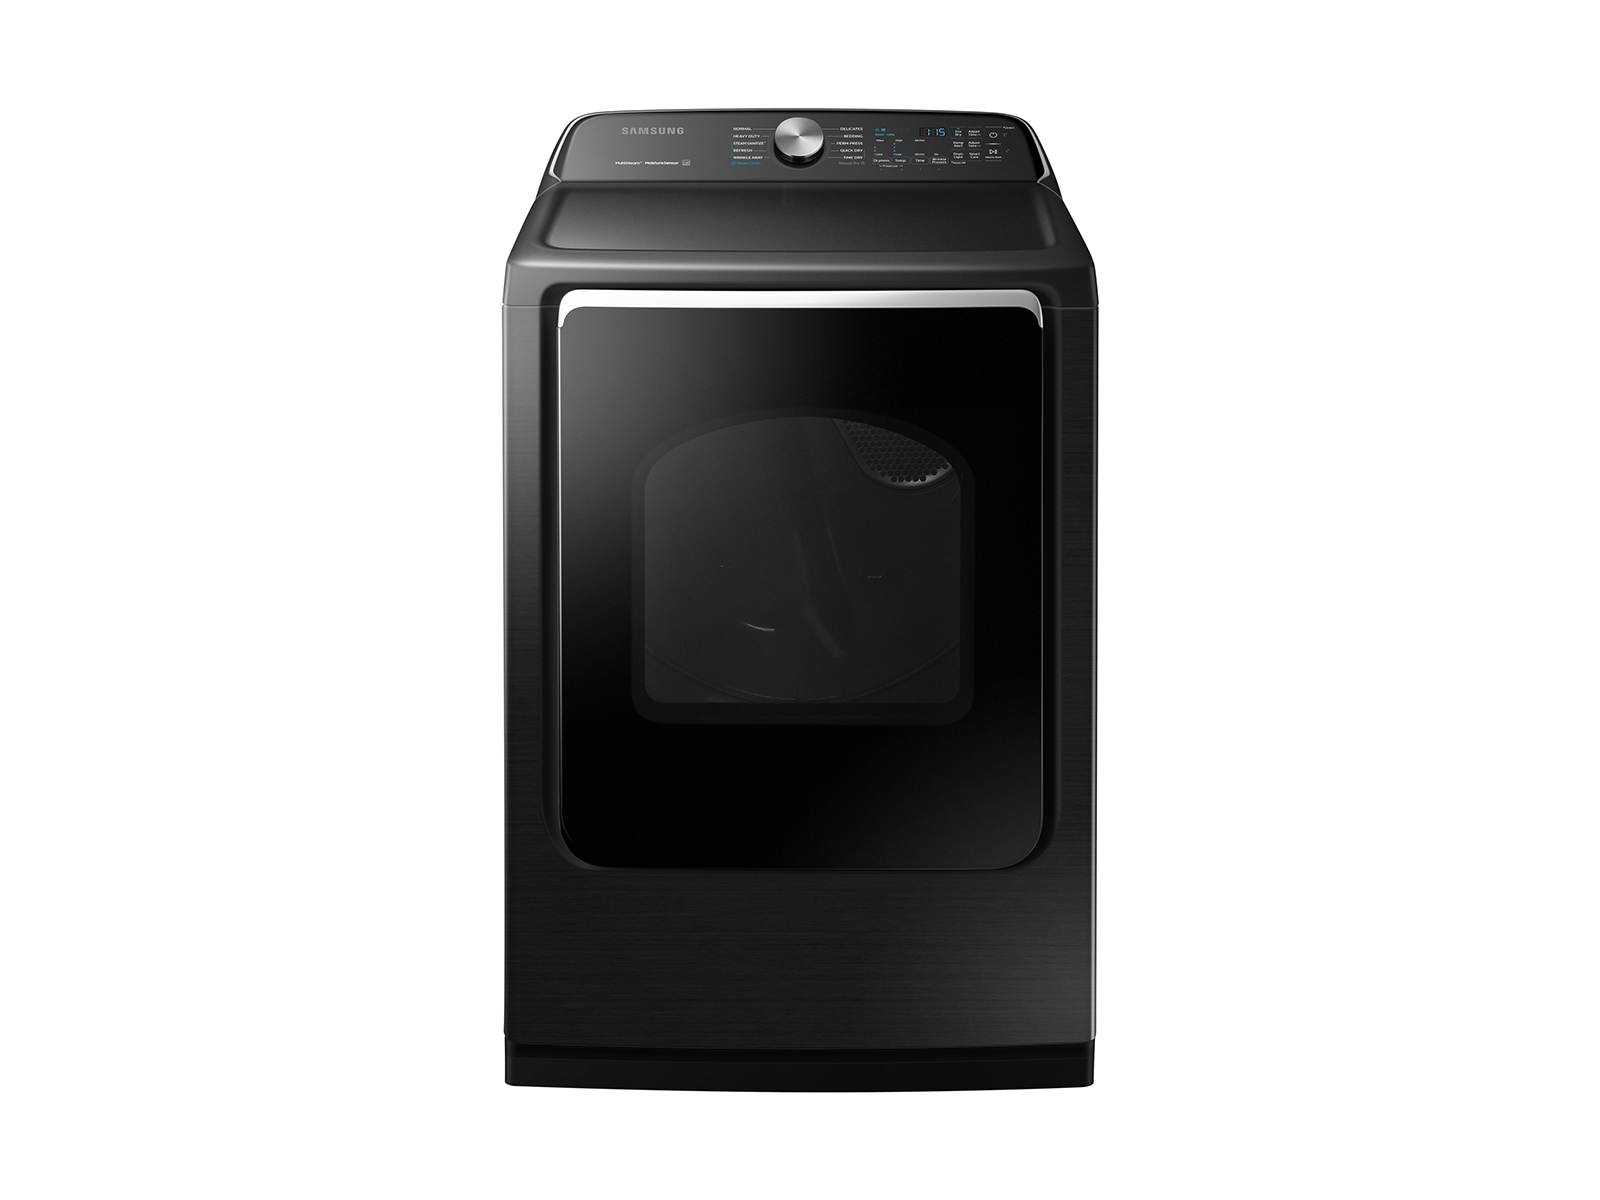 Samsung 7.4 cu. ft. Electric Dryer with Steam Sanitize+ in Black Stainless Steel, Fingerprint Resistant Black Stainless Steel